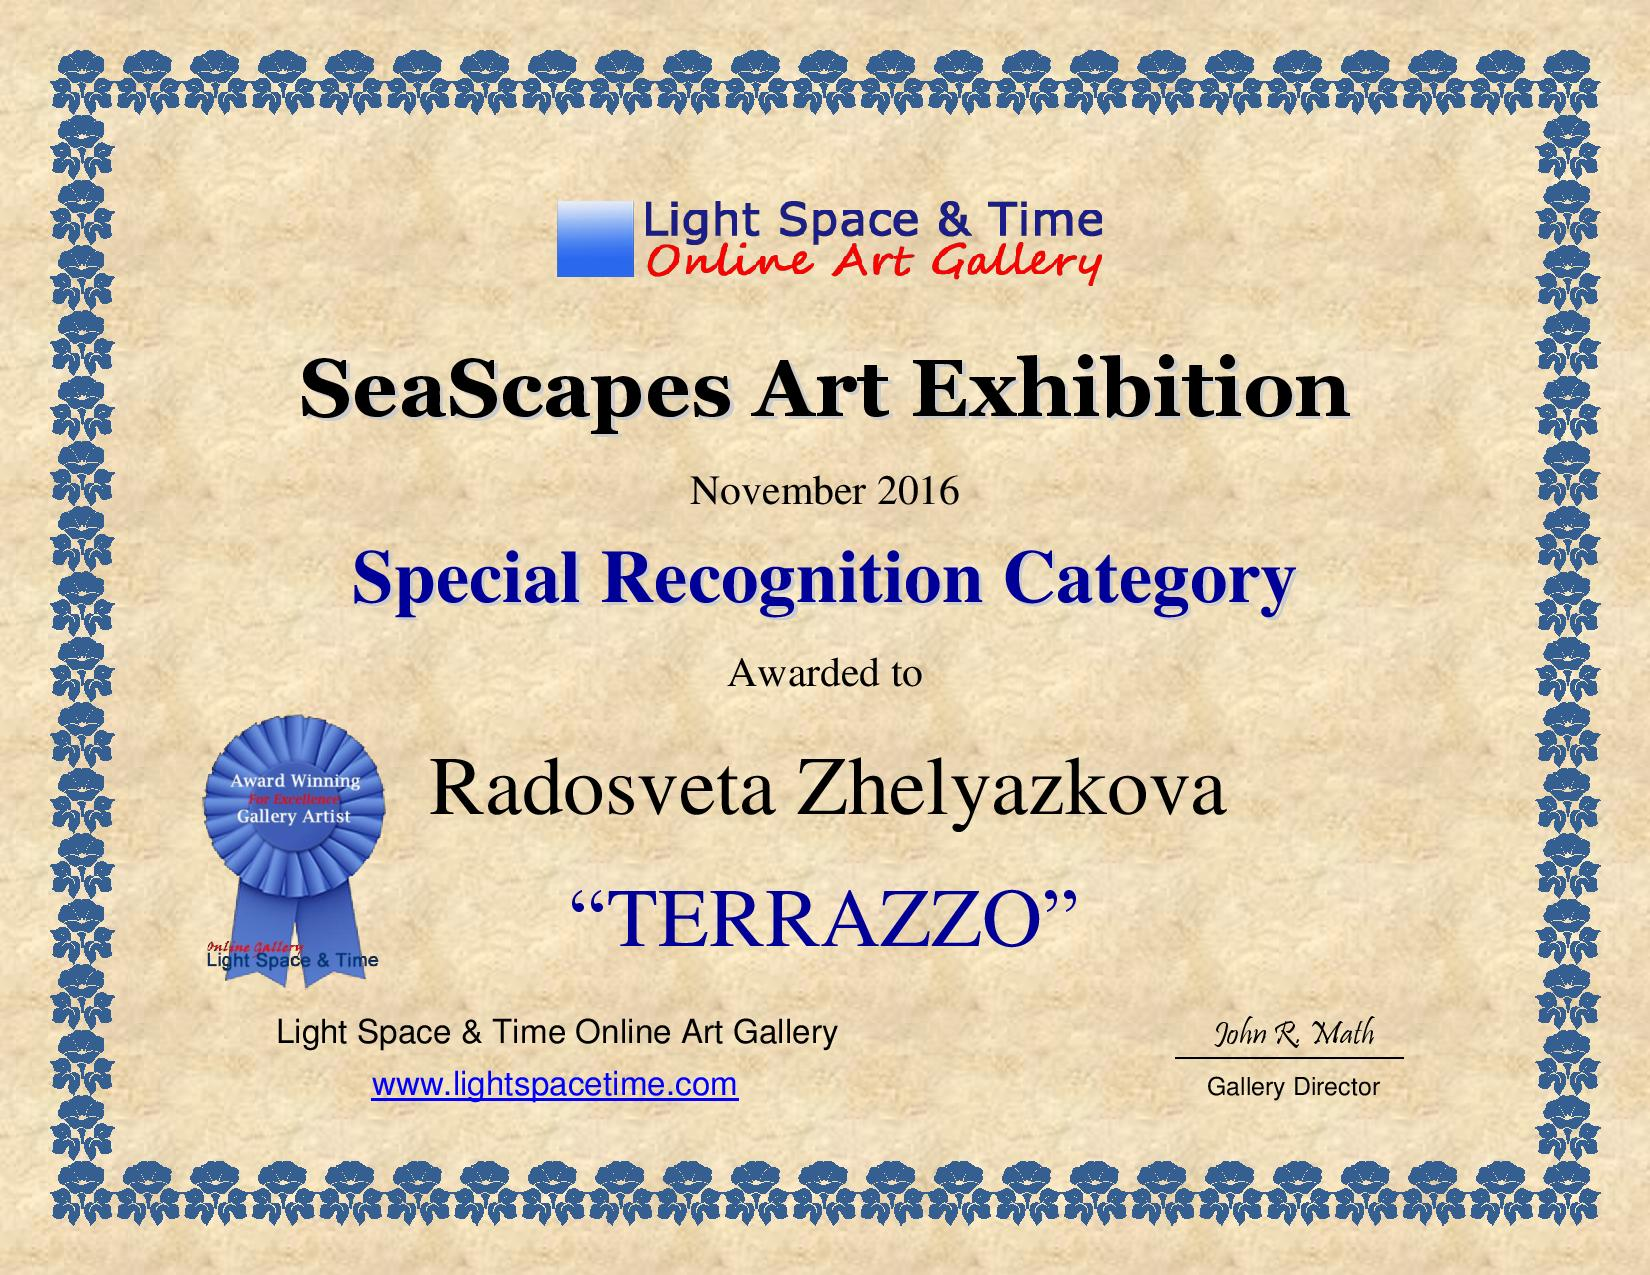 Radosveta Zhelyazkova; SeaScapes 2016 Art Exhibition; Certificate